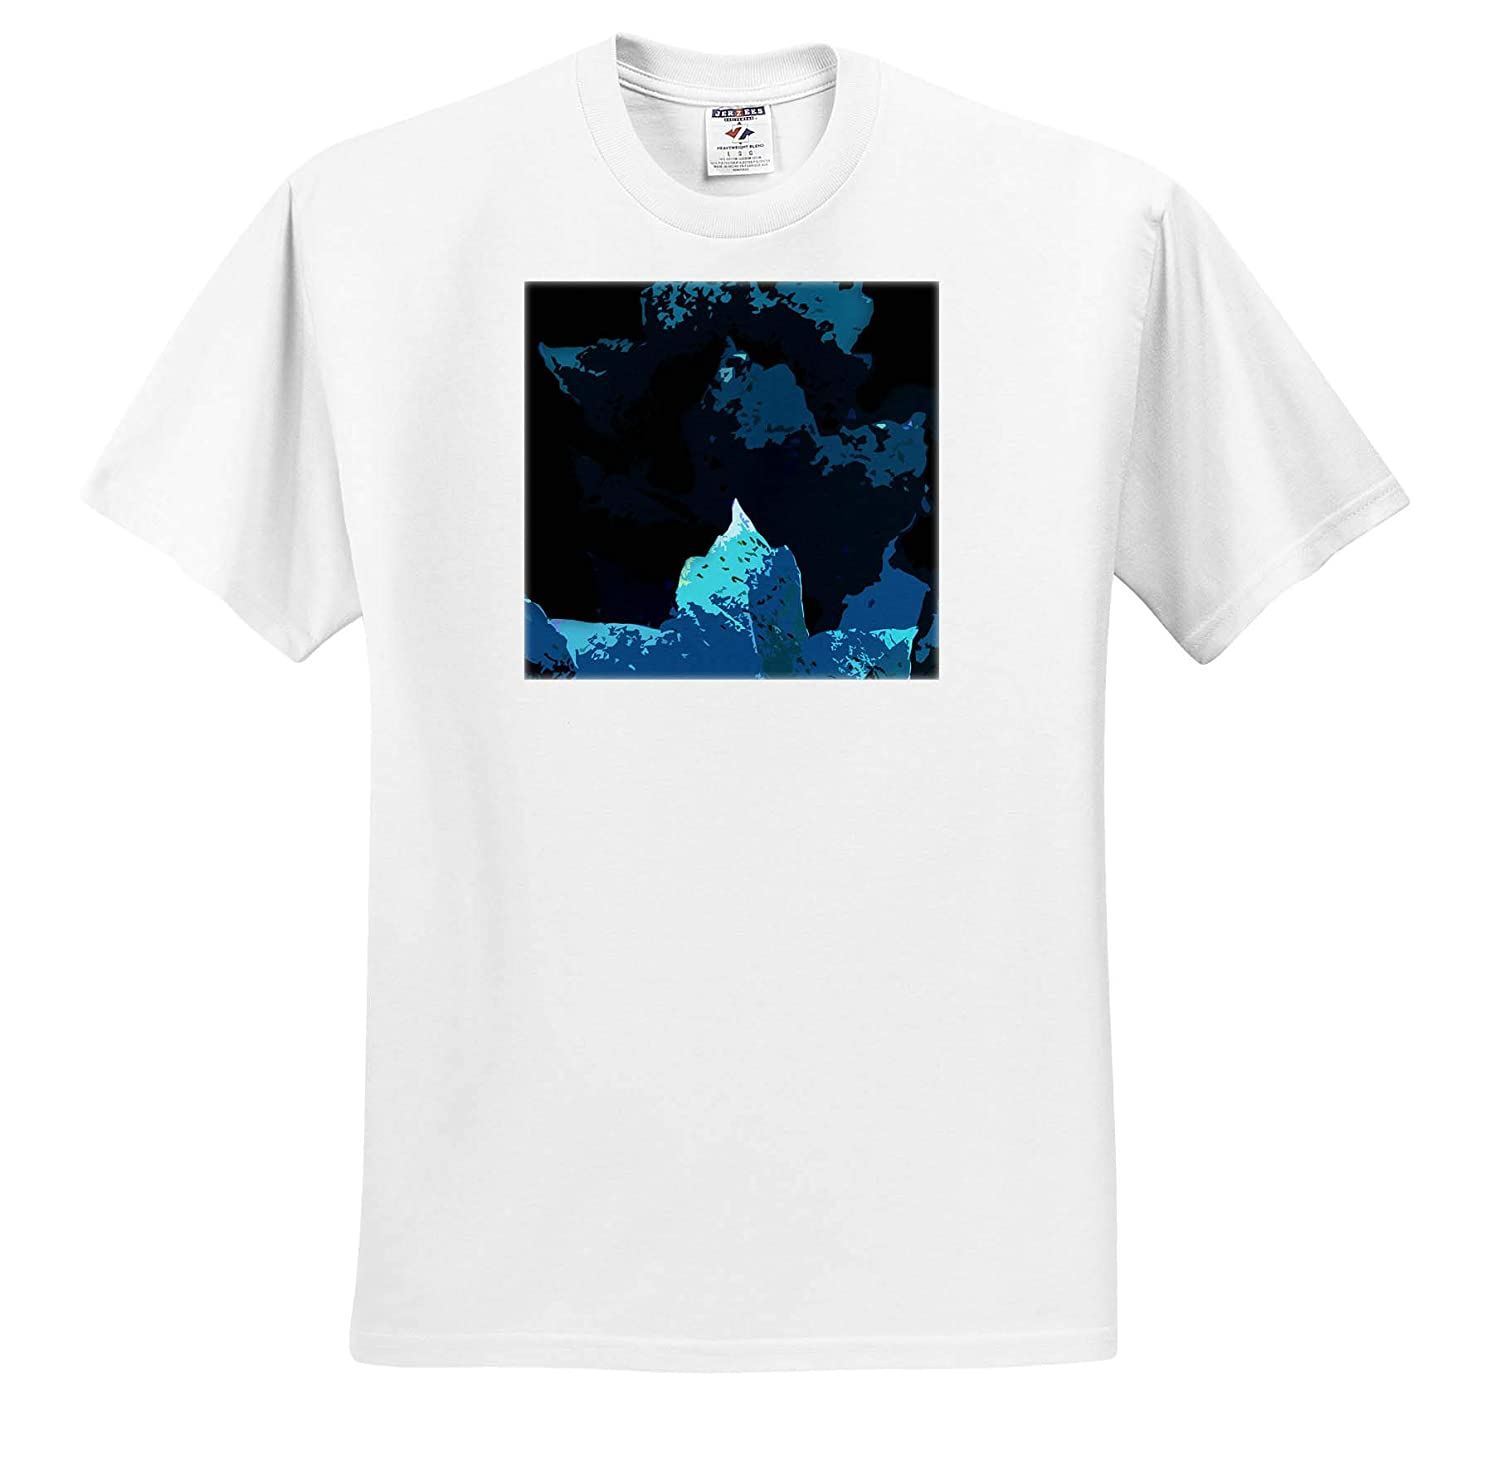 Photograph of Maple Leaves with an Abstract Effect in Blue hues 3dRose Stamp City - T-Shirts Abstract